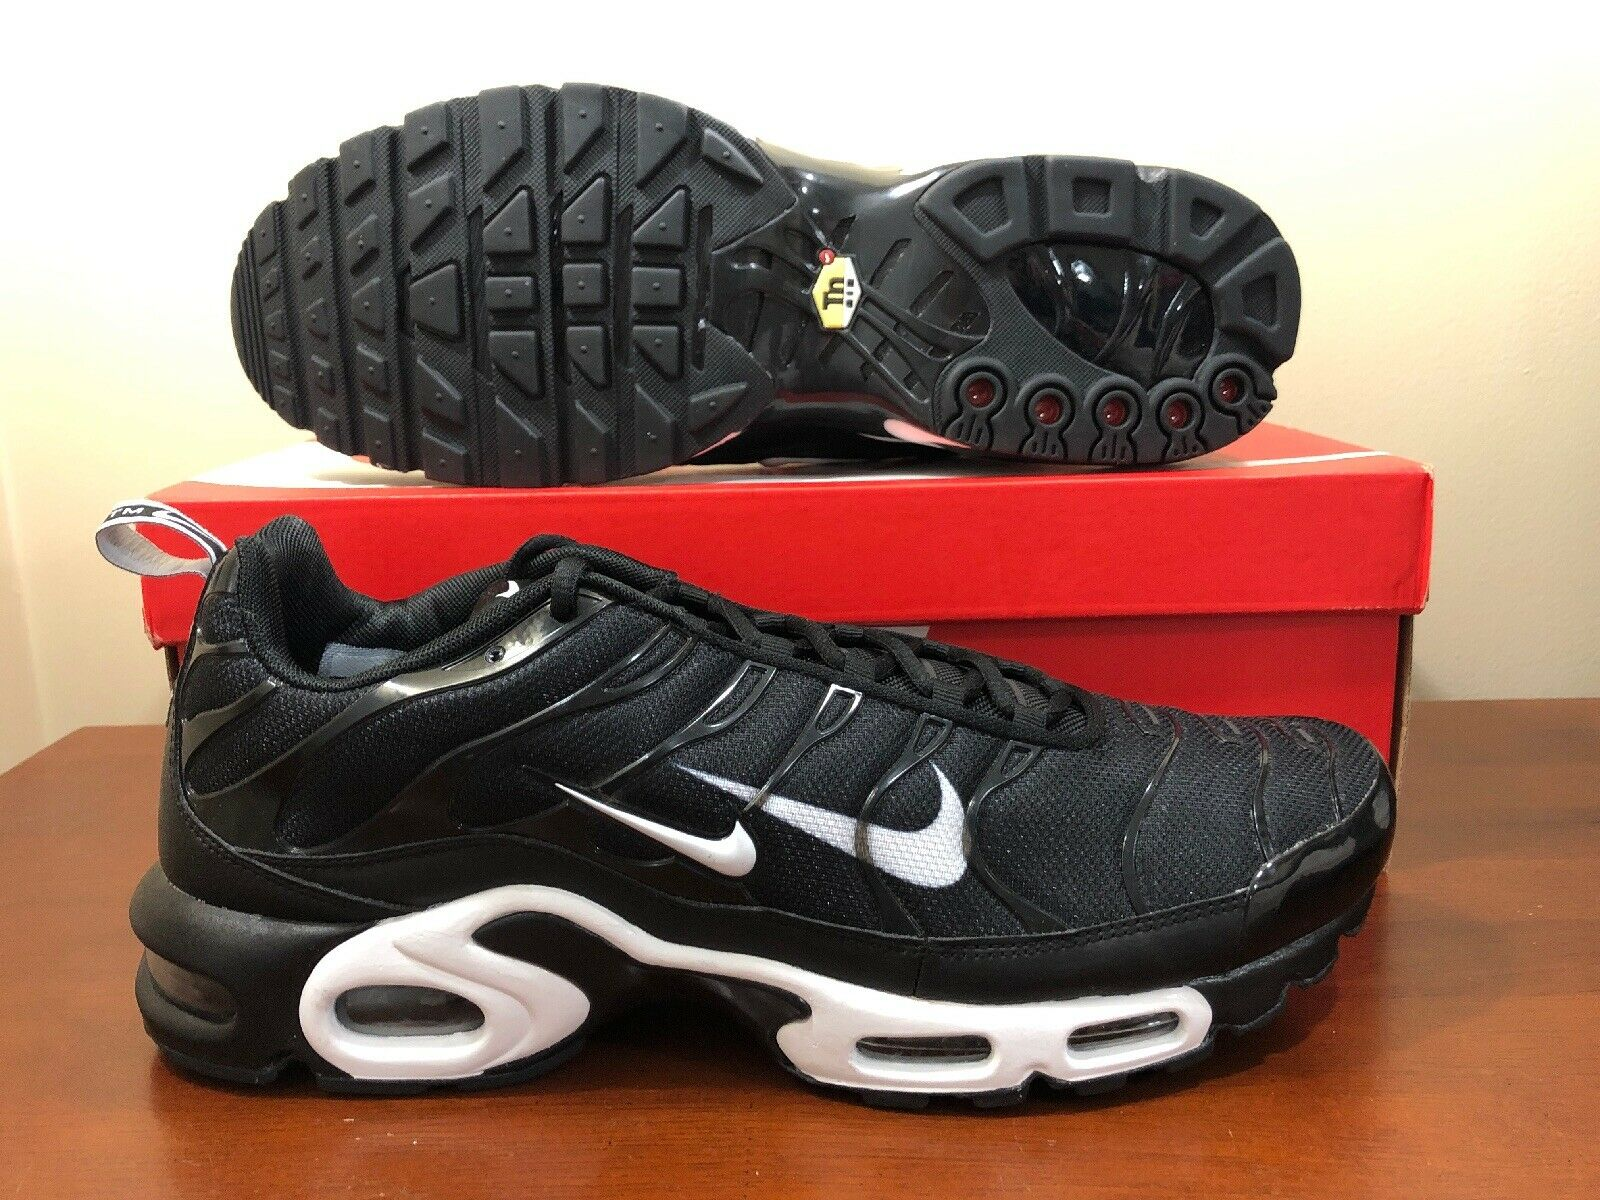 Nike Air Max Plus PRM TN Size 14 Black White Running shoes 815994 004 New